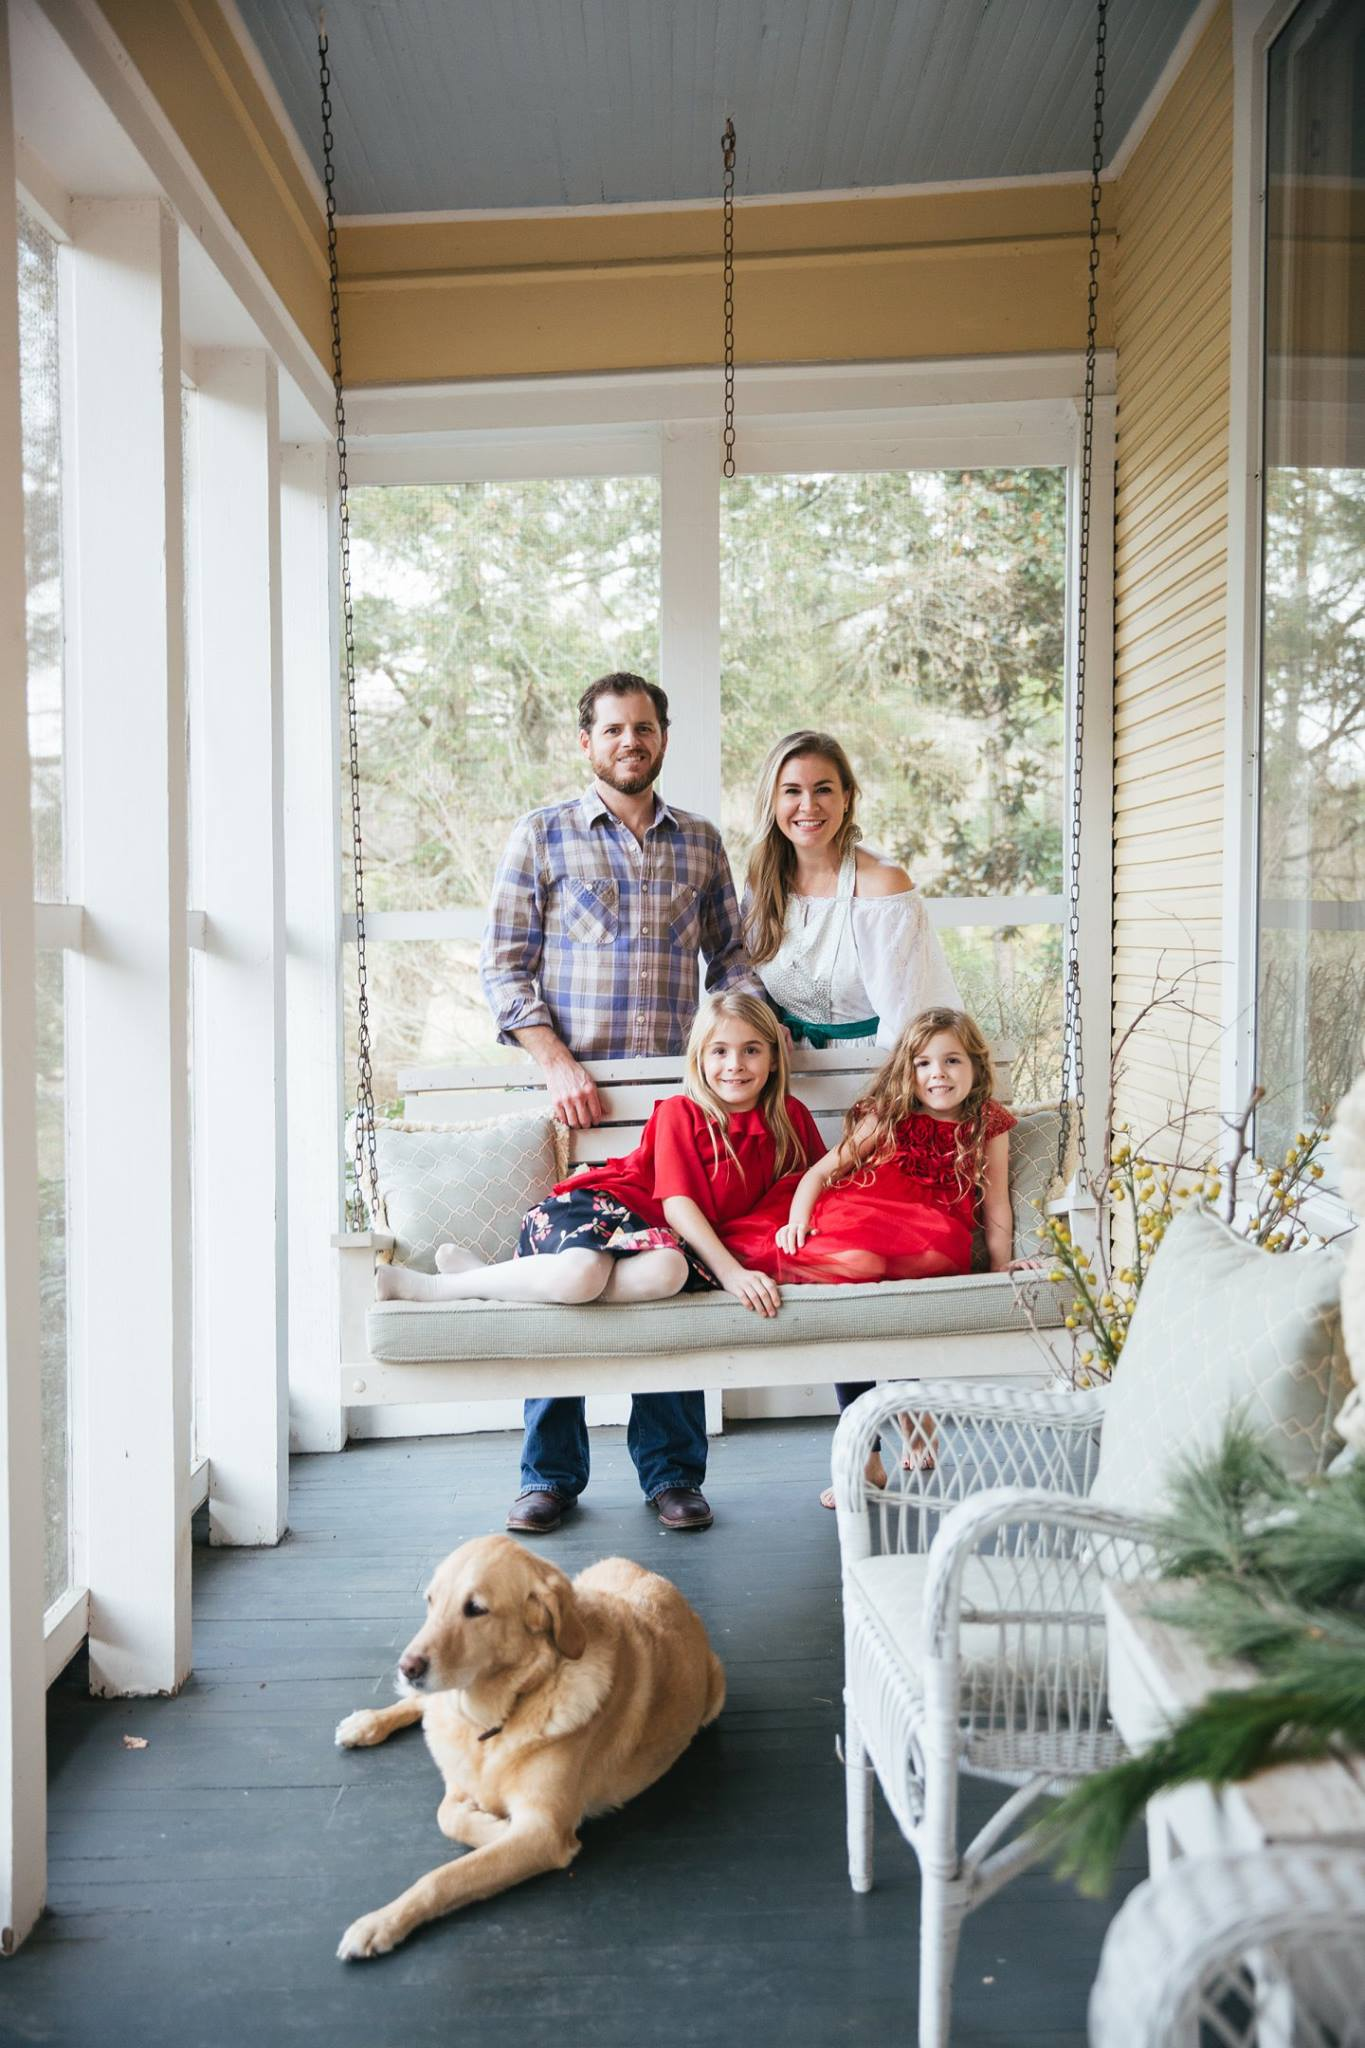 Deann and her beautiful family at home